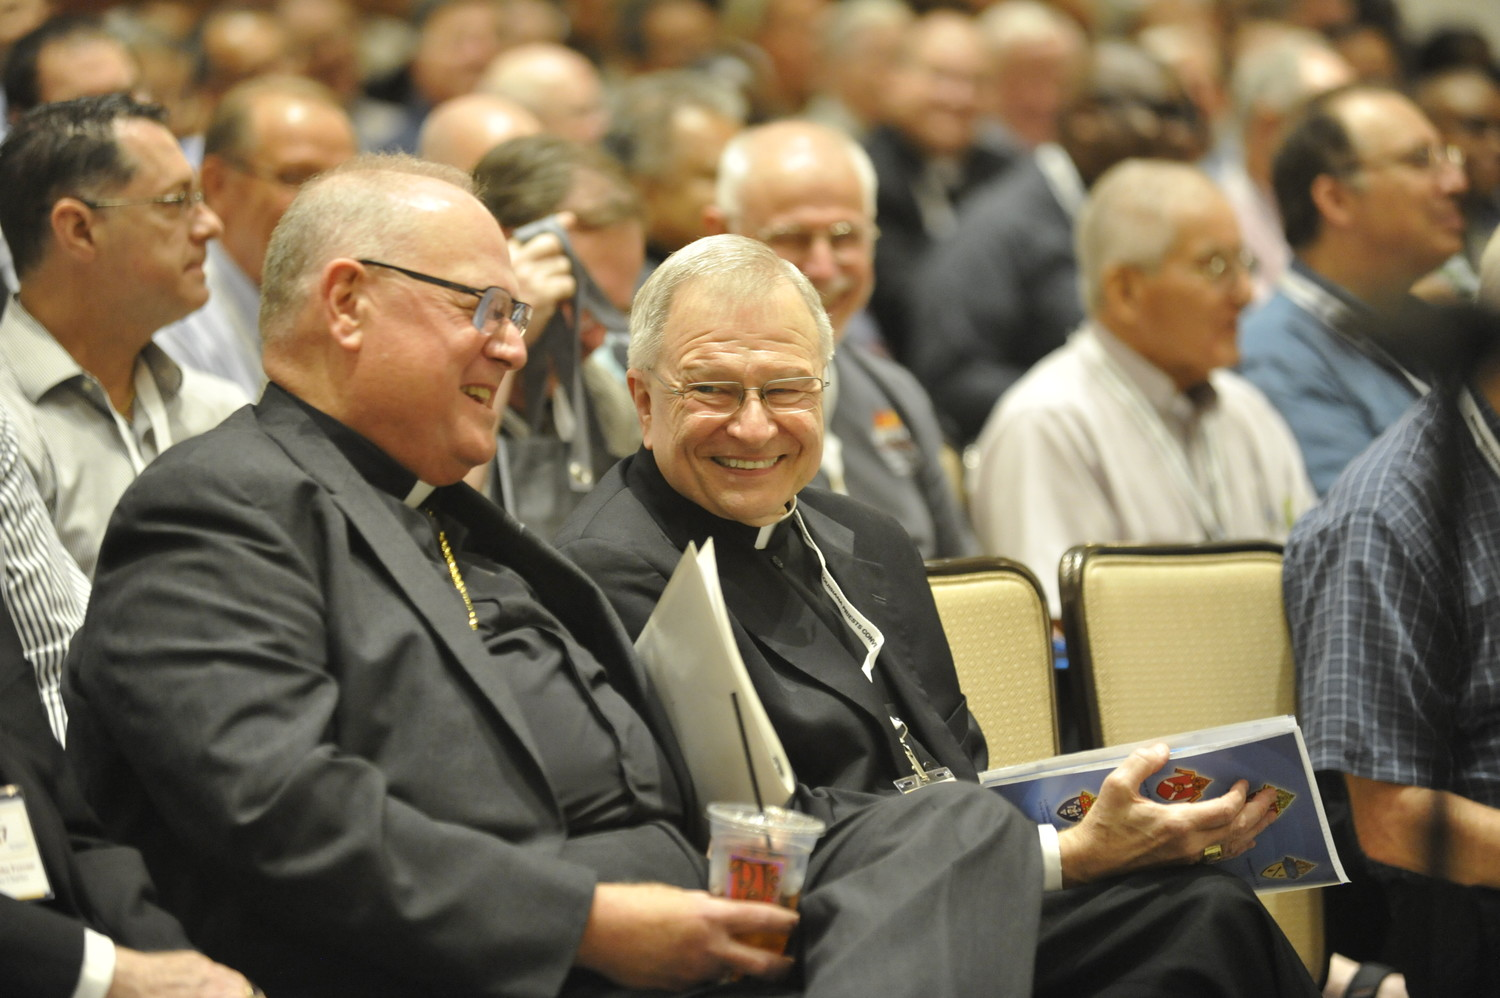 Cardinal Dolan and Archbishop Gregory Aymond of New Orleans share a laugh before the cardinal addressed the Louisiana Priests' Convention Sept. 19.